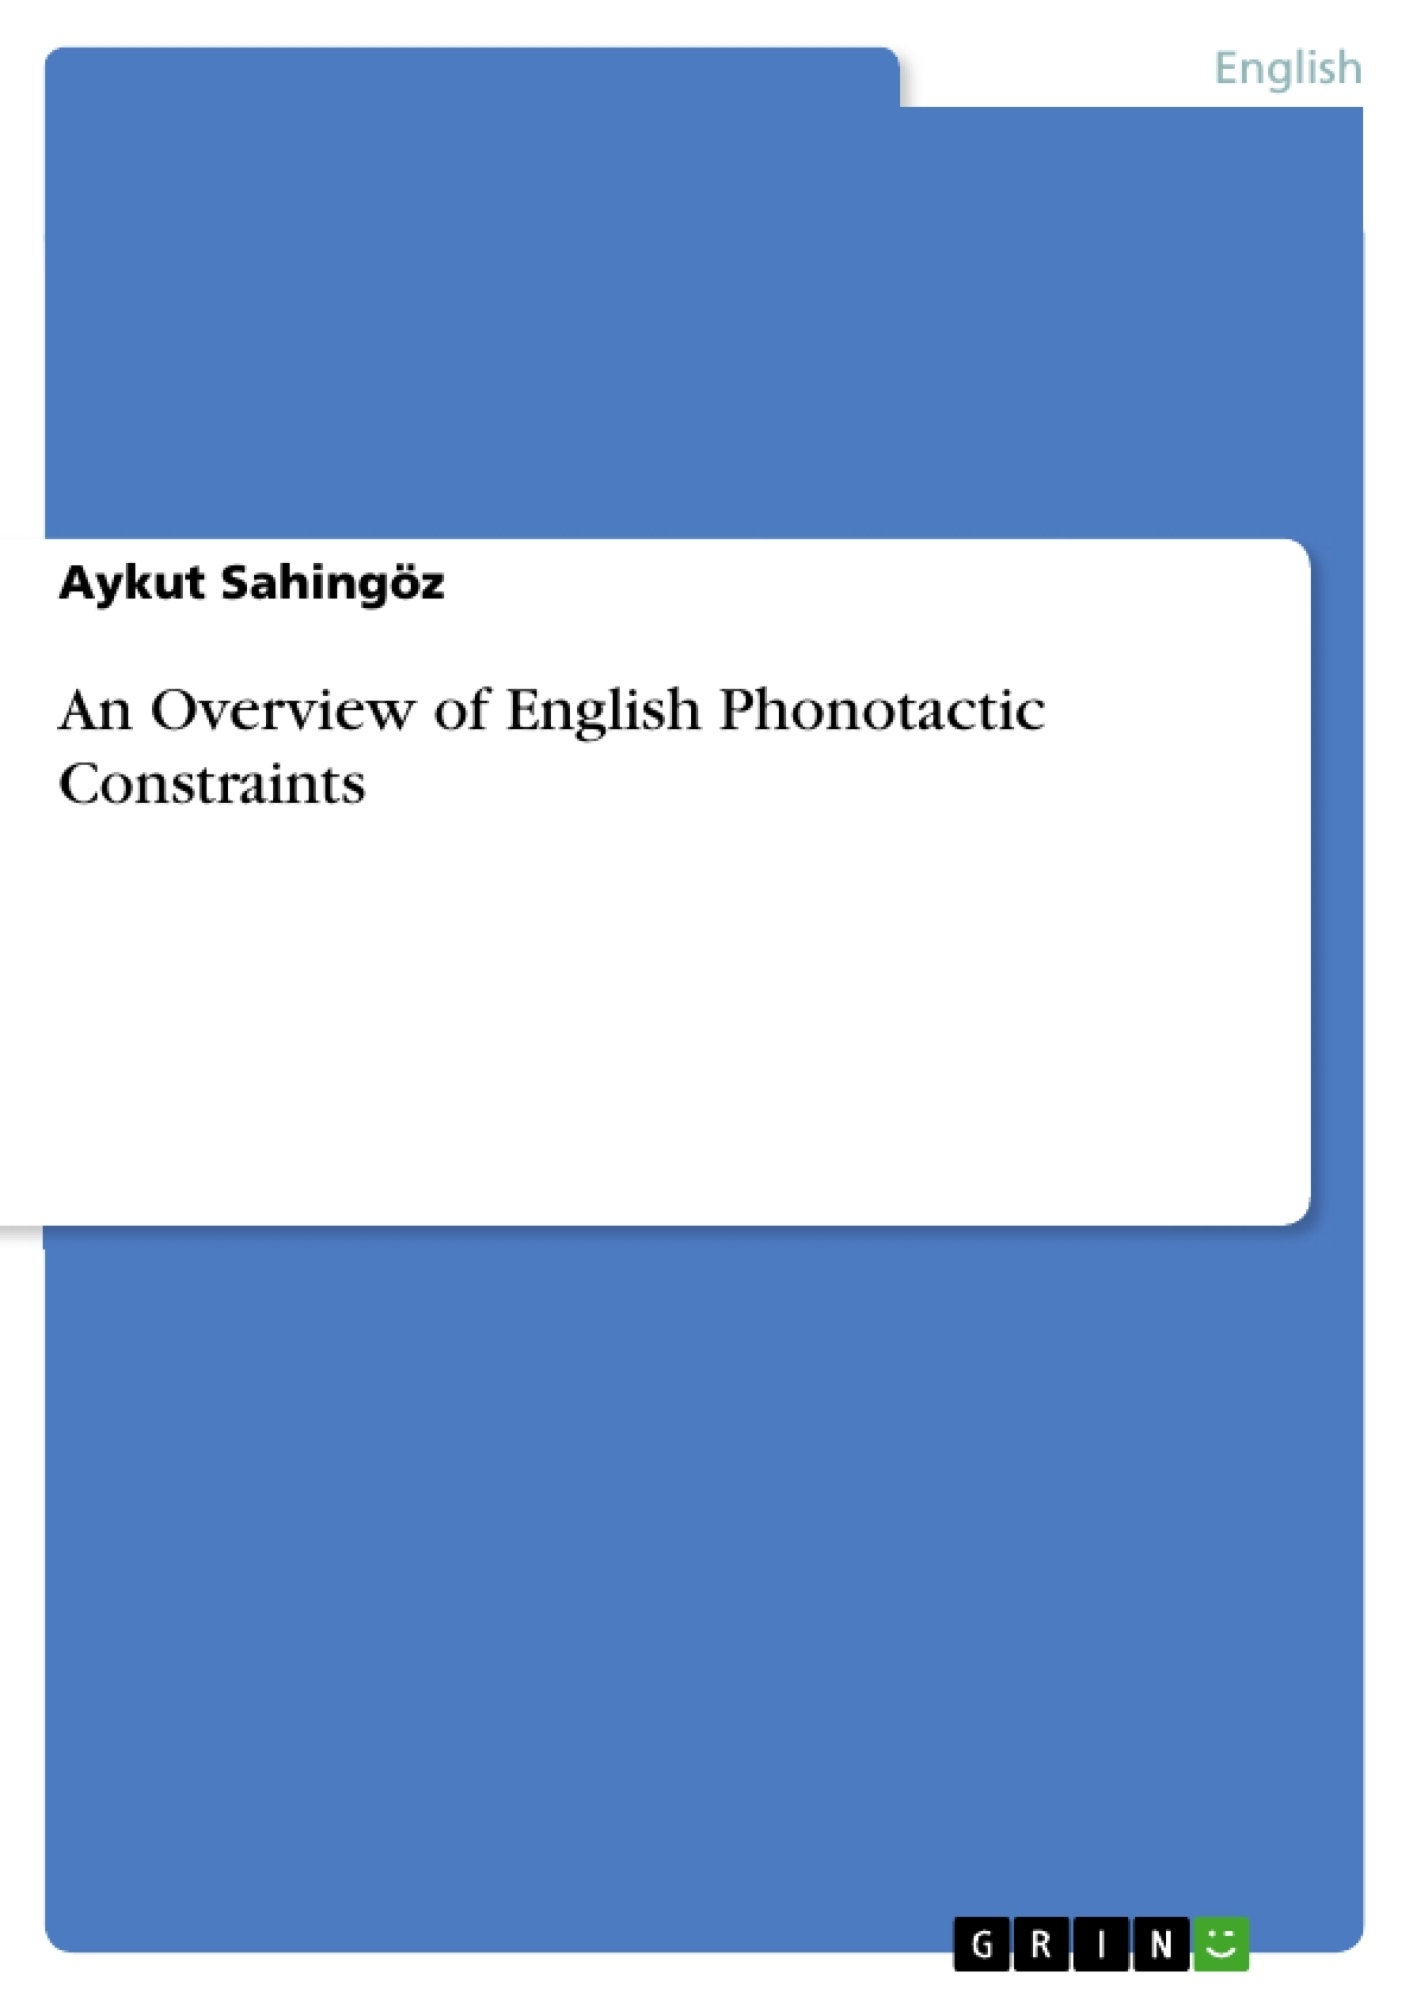 Title: An Overview of English Phonotactic Constraints